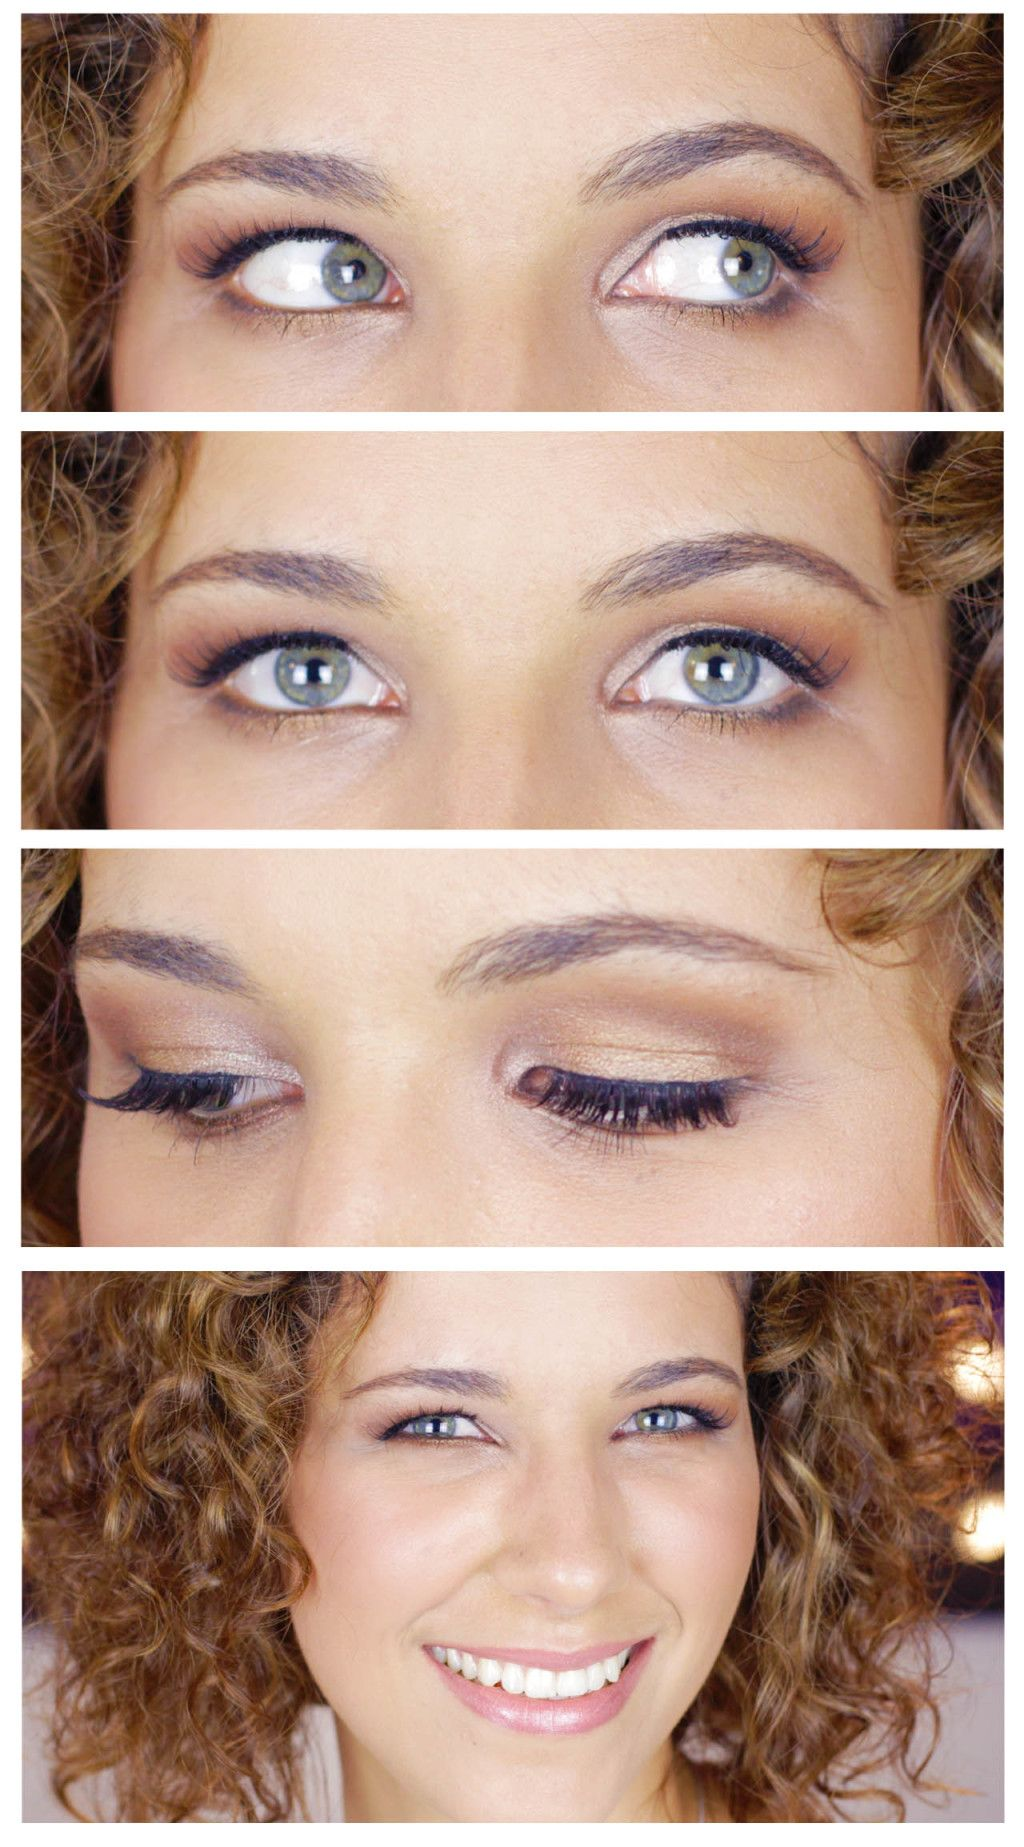 Makeup Mascara Tips Makeup For Hooded Eyes An Eye Opening Look Prom Prom  Eye Makeup For